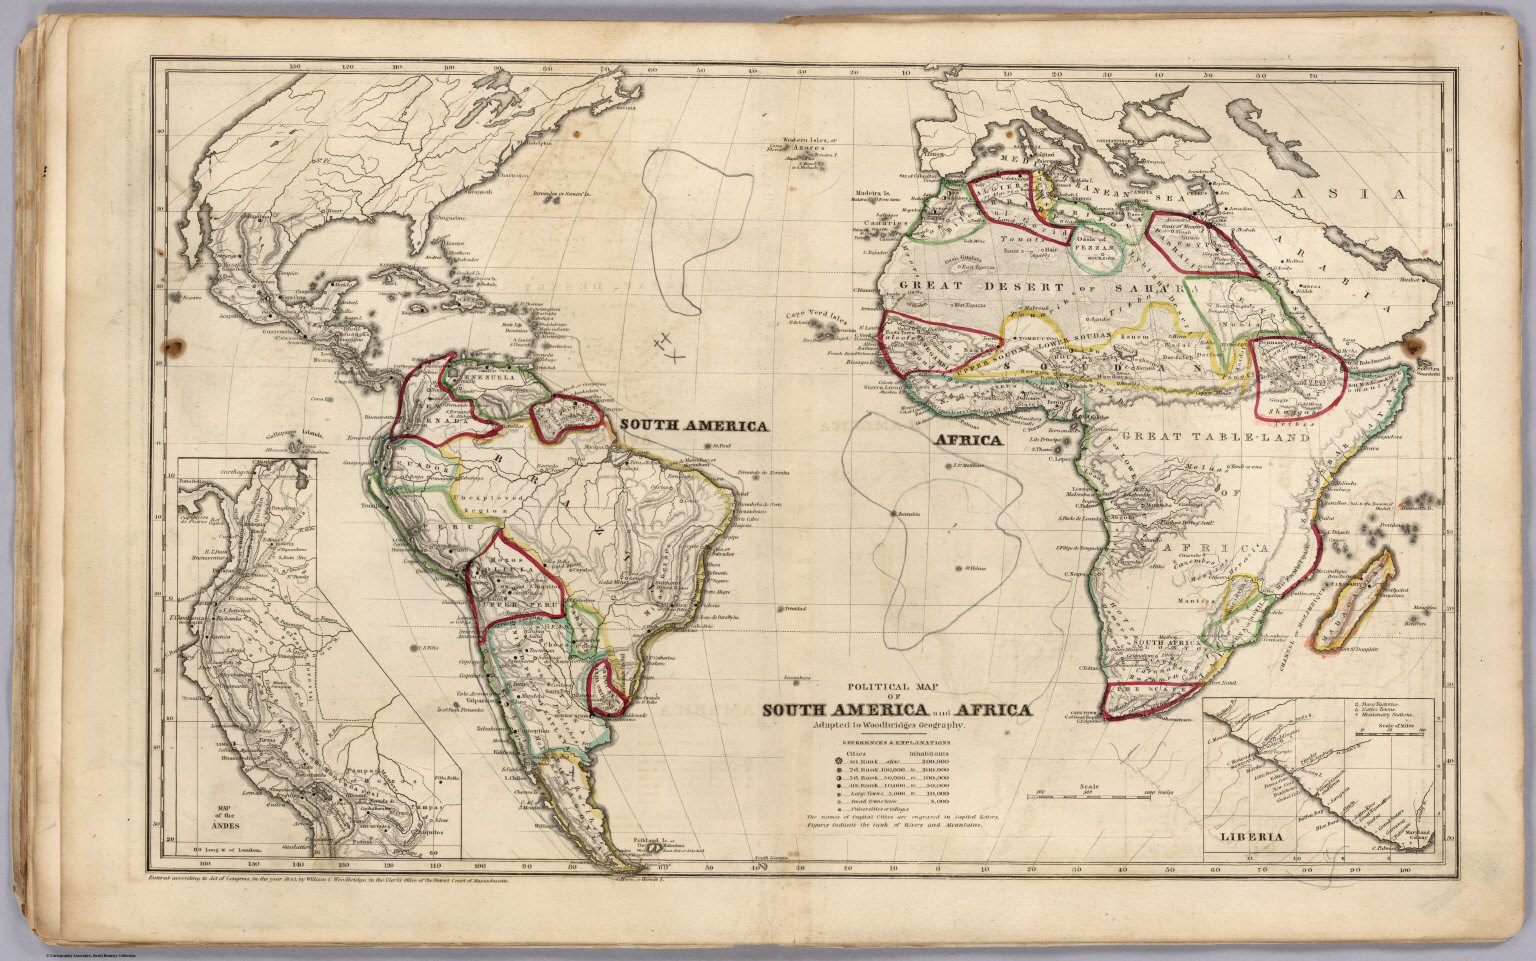 Political Map Of South America And Africa  David Rumsey